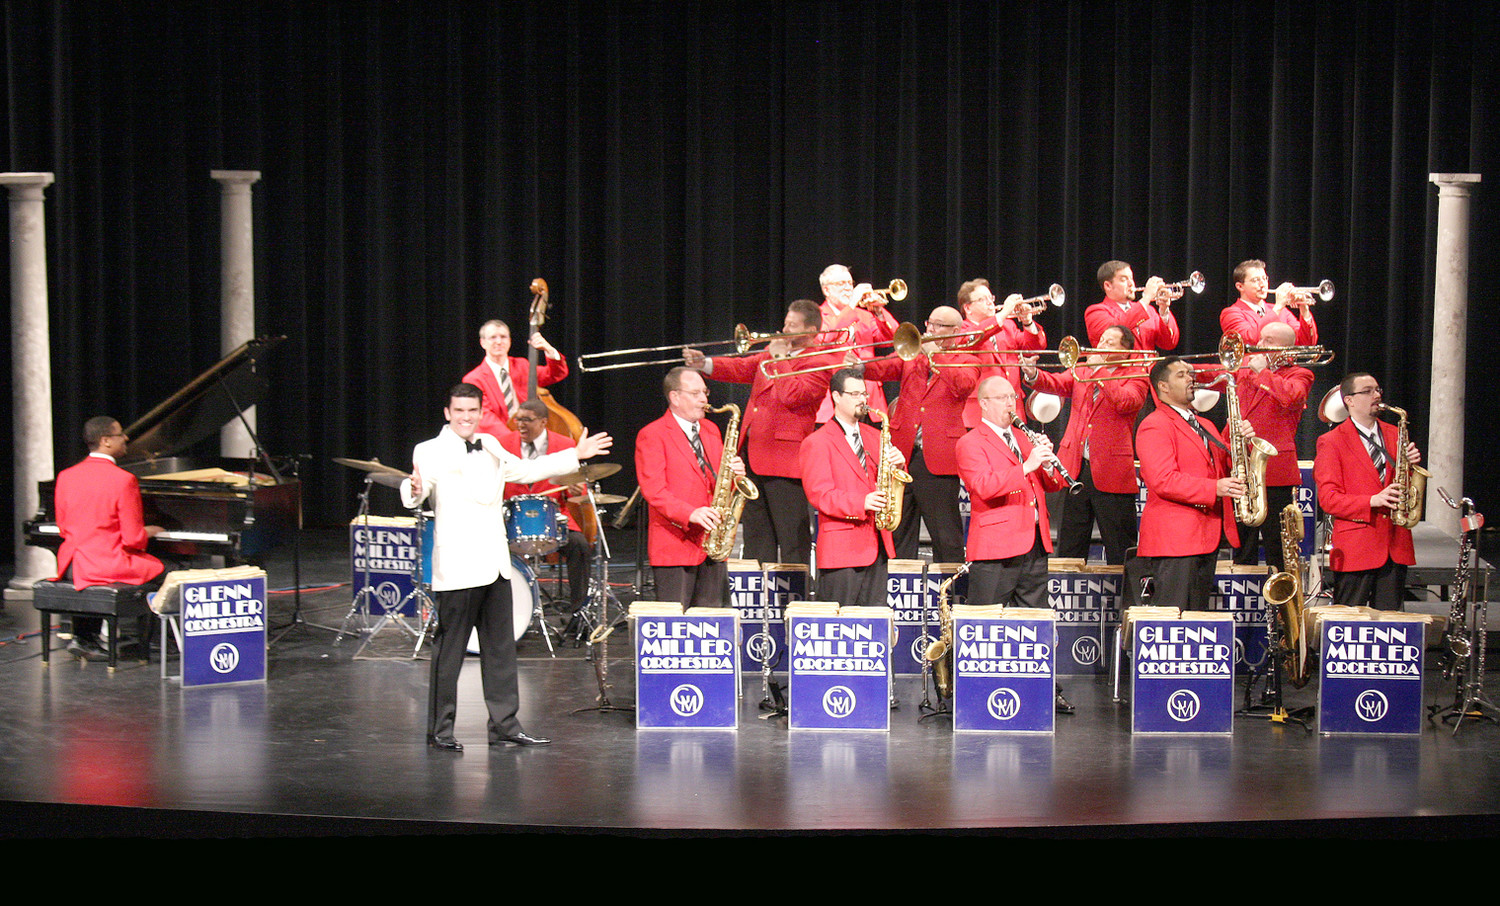 This is the world famous Glenn Miller Orchestra, with music director Nick Hilscher. The orchestra has been touring consistently since 1956, playing an average of 300 live performances a year all around the world.